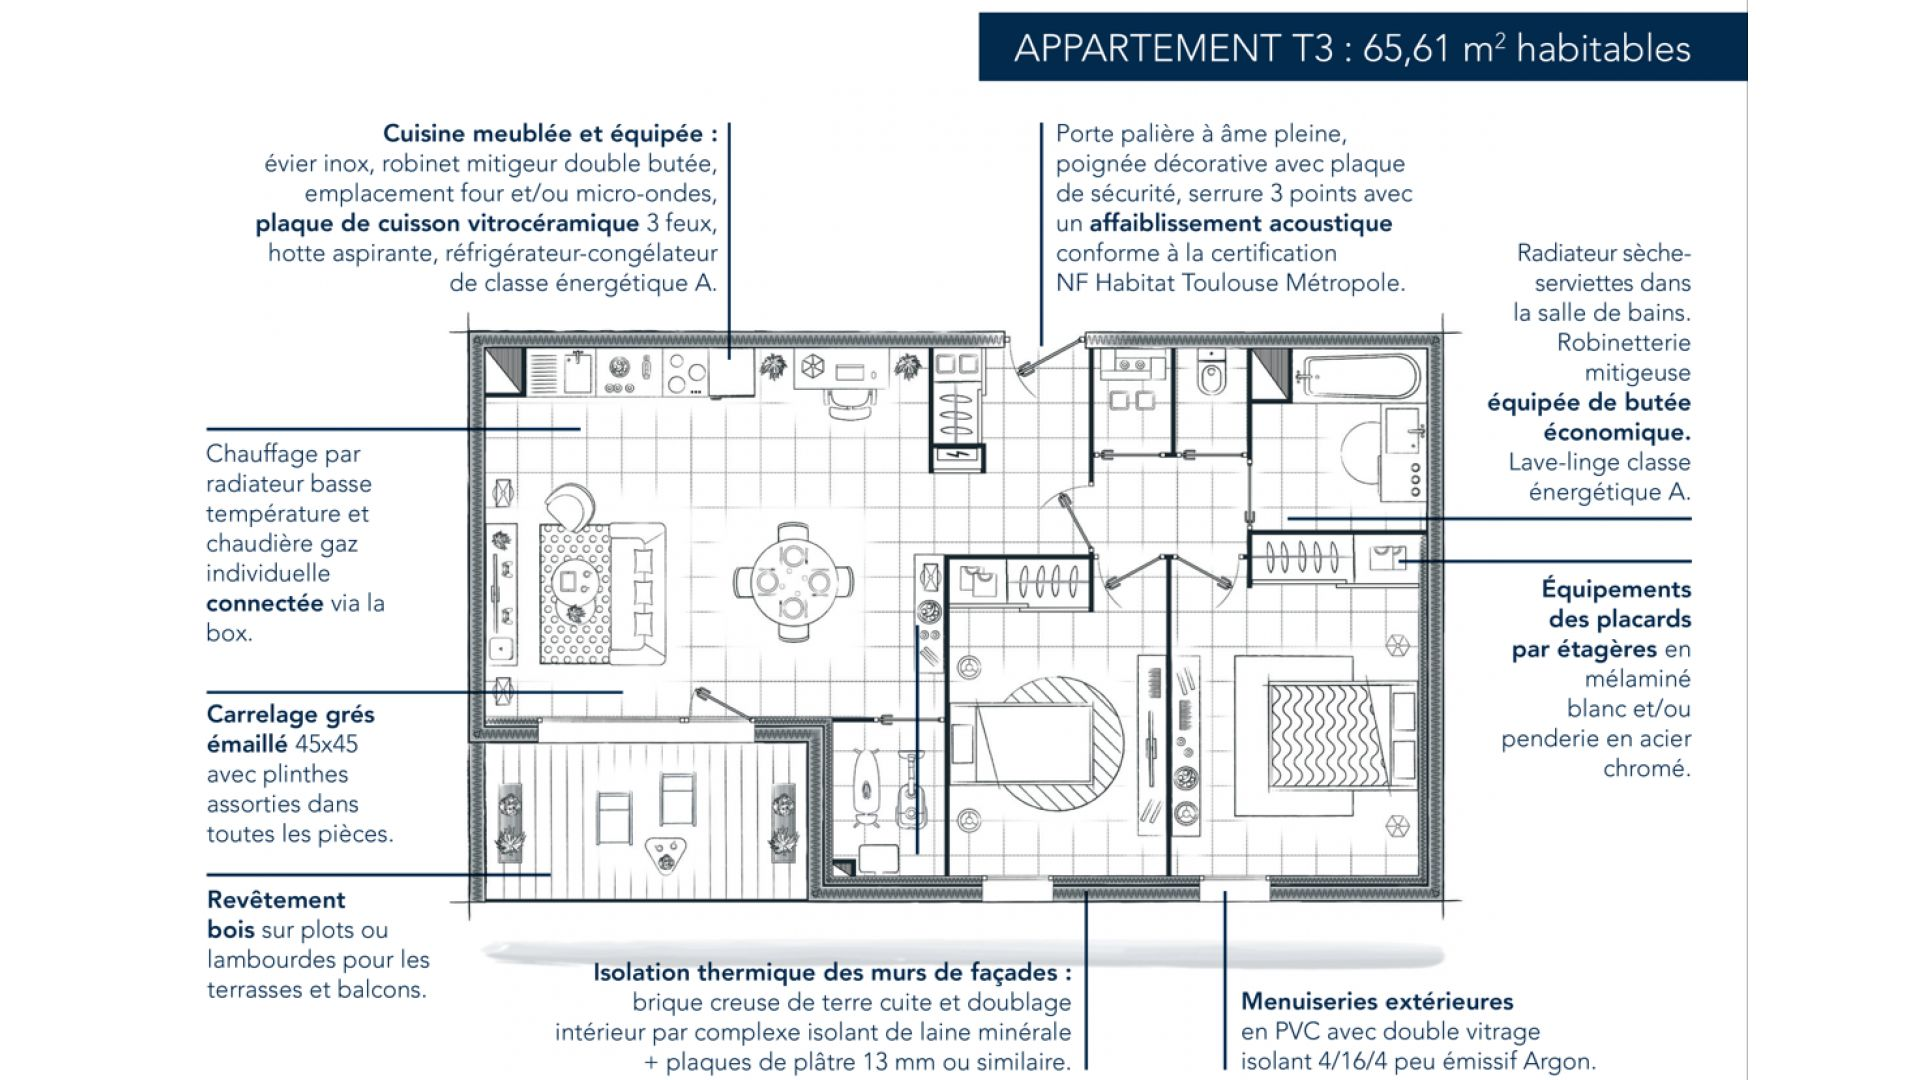 Greencity Immobilier - Patio 47 - 31320 Castanet-Tolosan - achat appartements du T2 au T4 - plan appartement T3